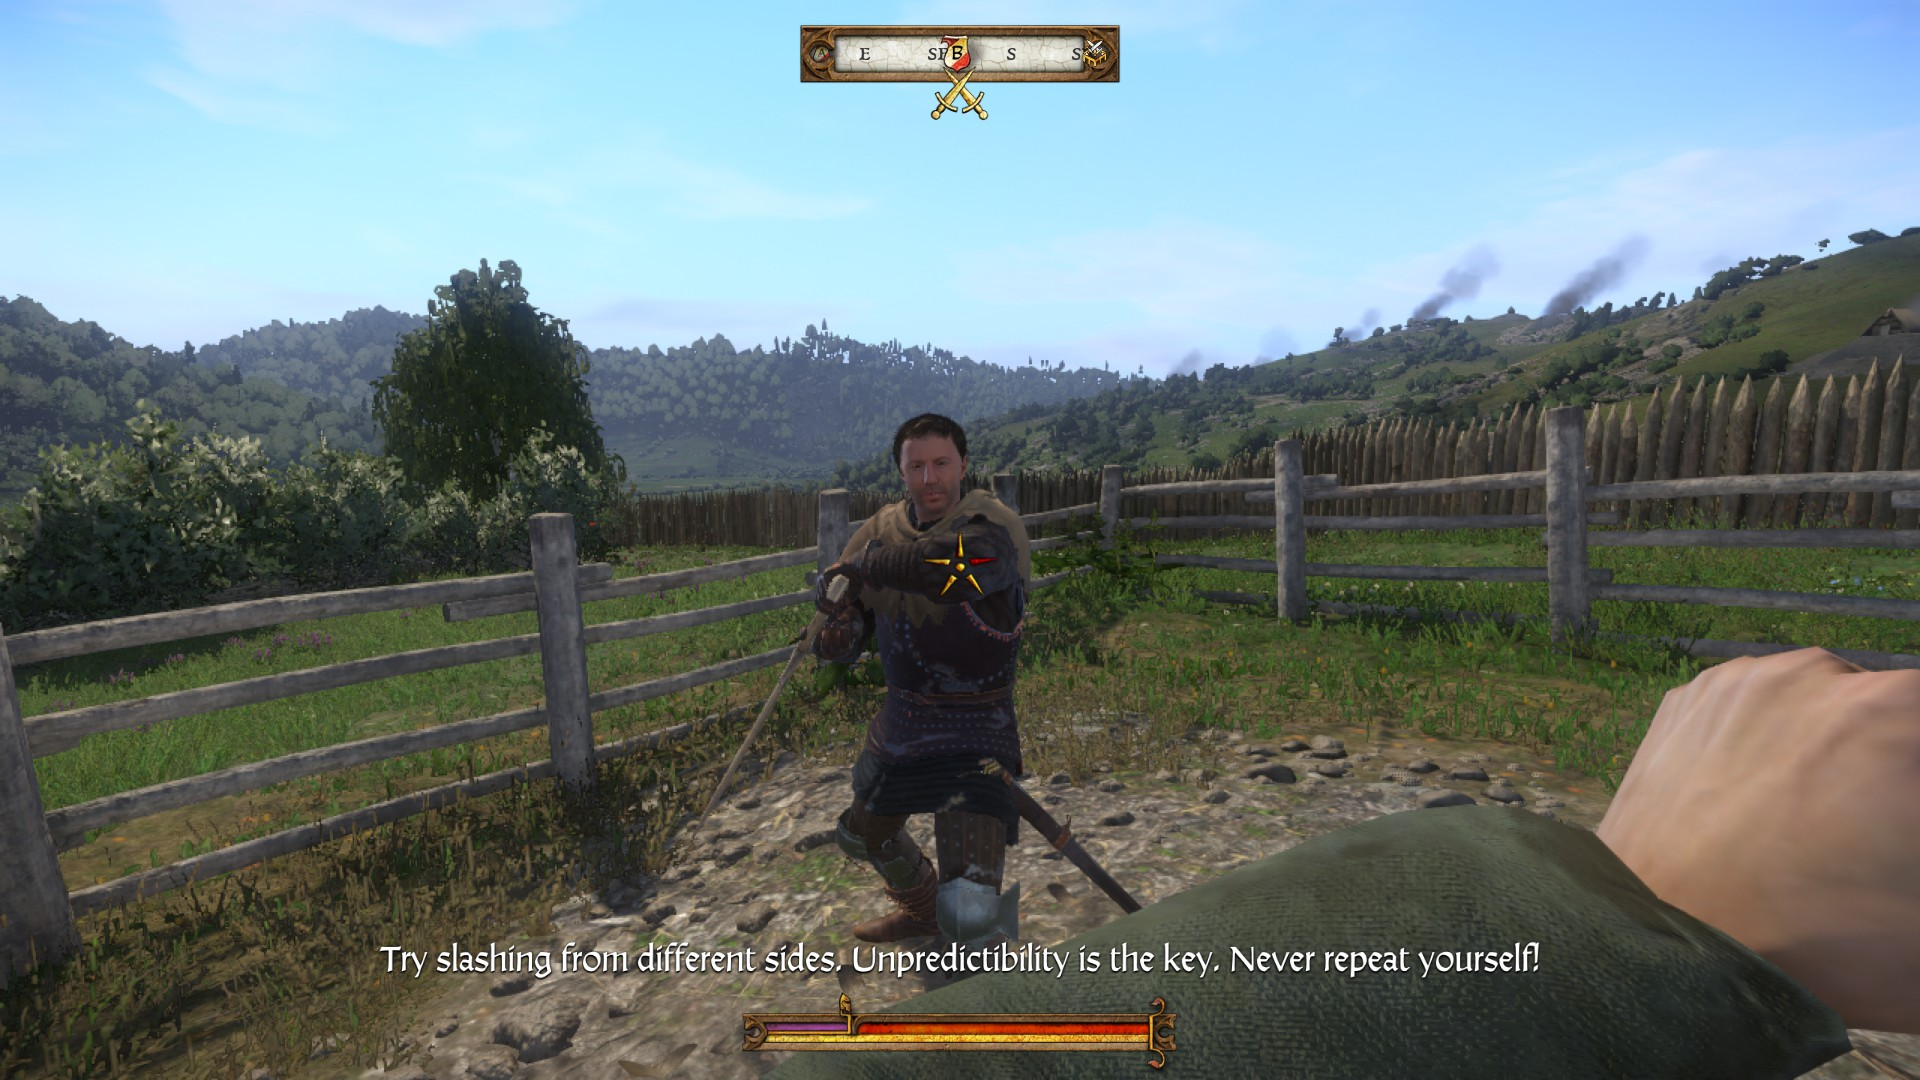 Kingdom Come: Deliverance Mod Fixes the Game's Troublesome Save